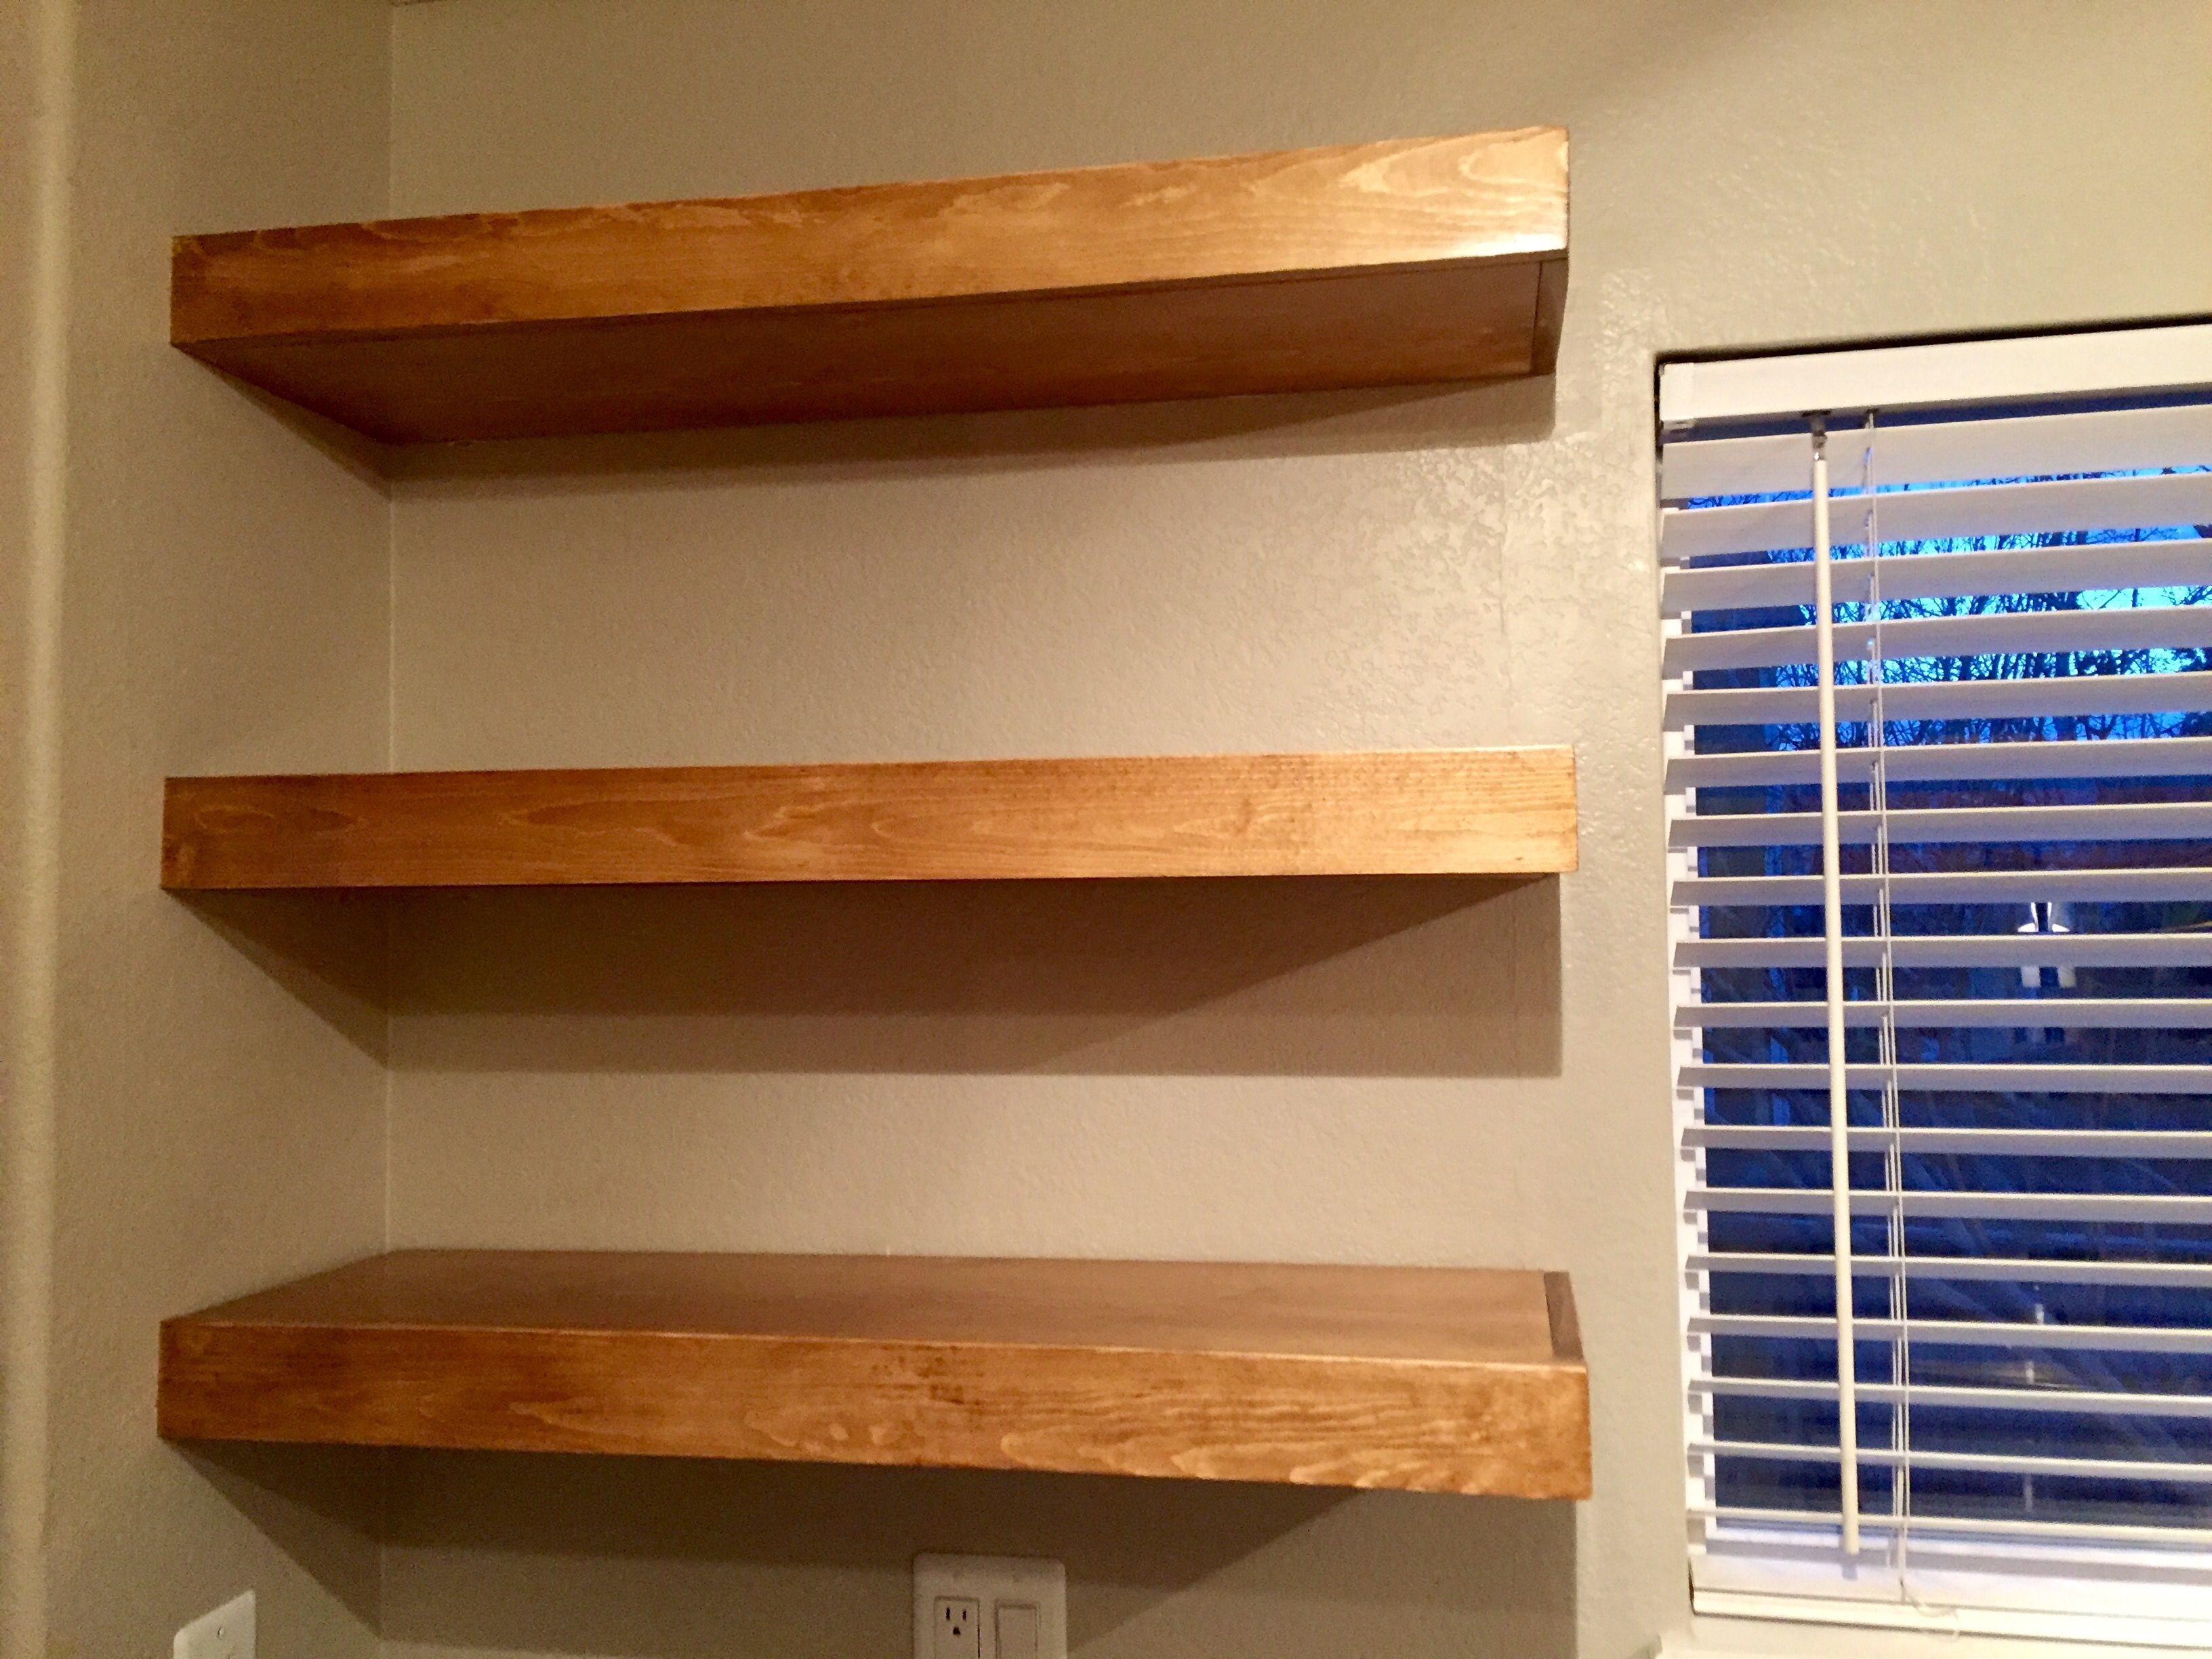 Kitchen Floating Shelves Early American Minwax Stain 3 Coats Clear Oil Based Polyurethane 0000 Steel Wool Floating Shelves Shelves Minwax Stain